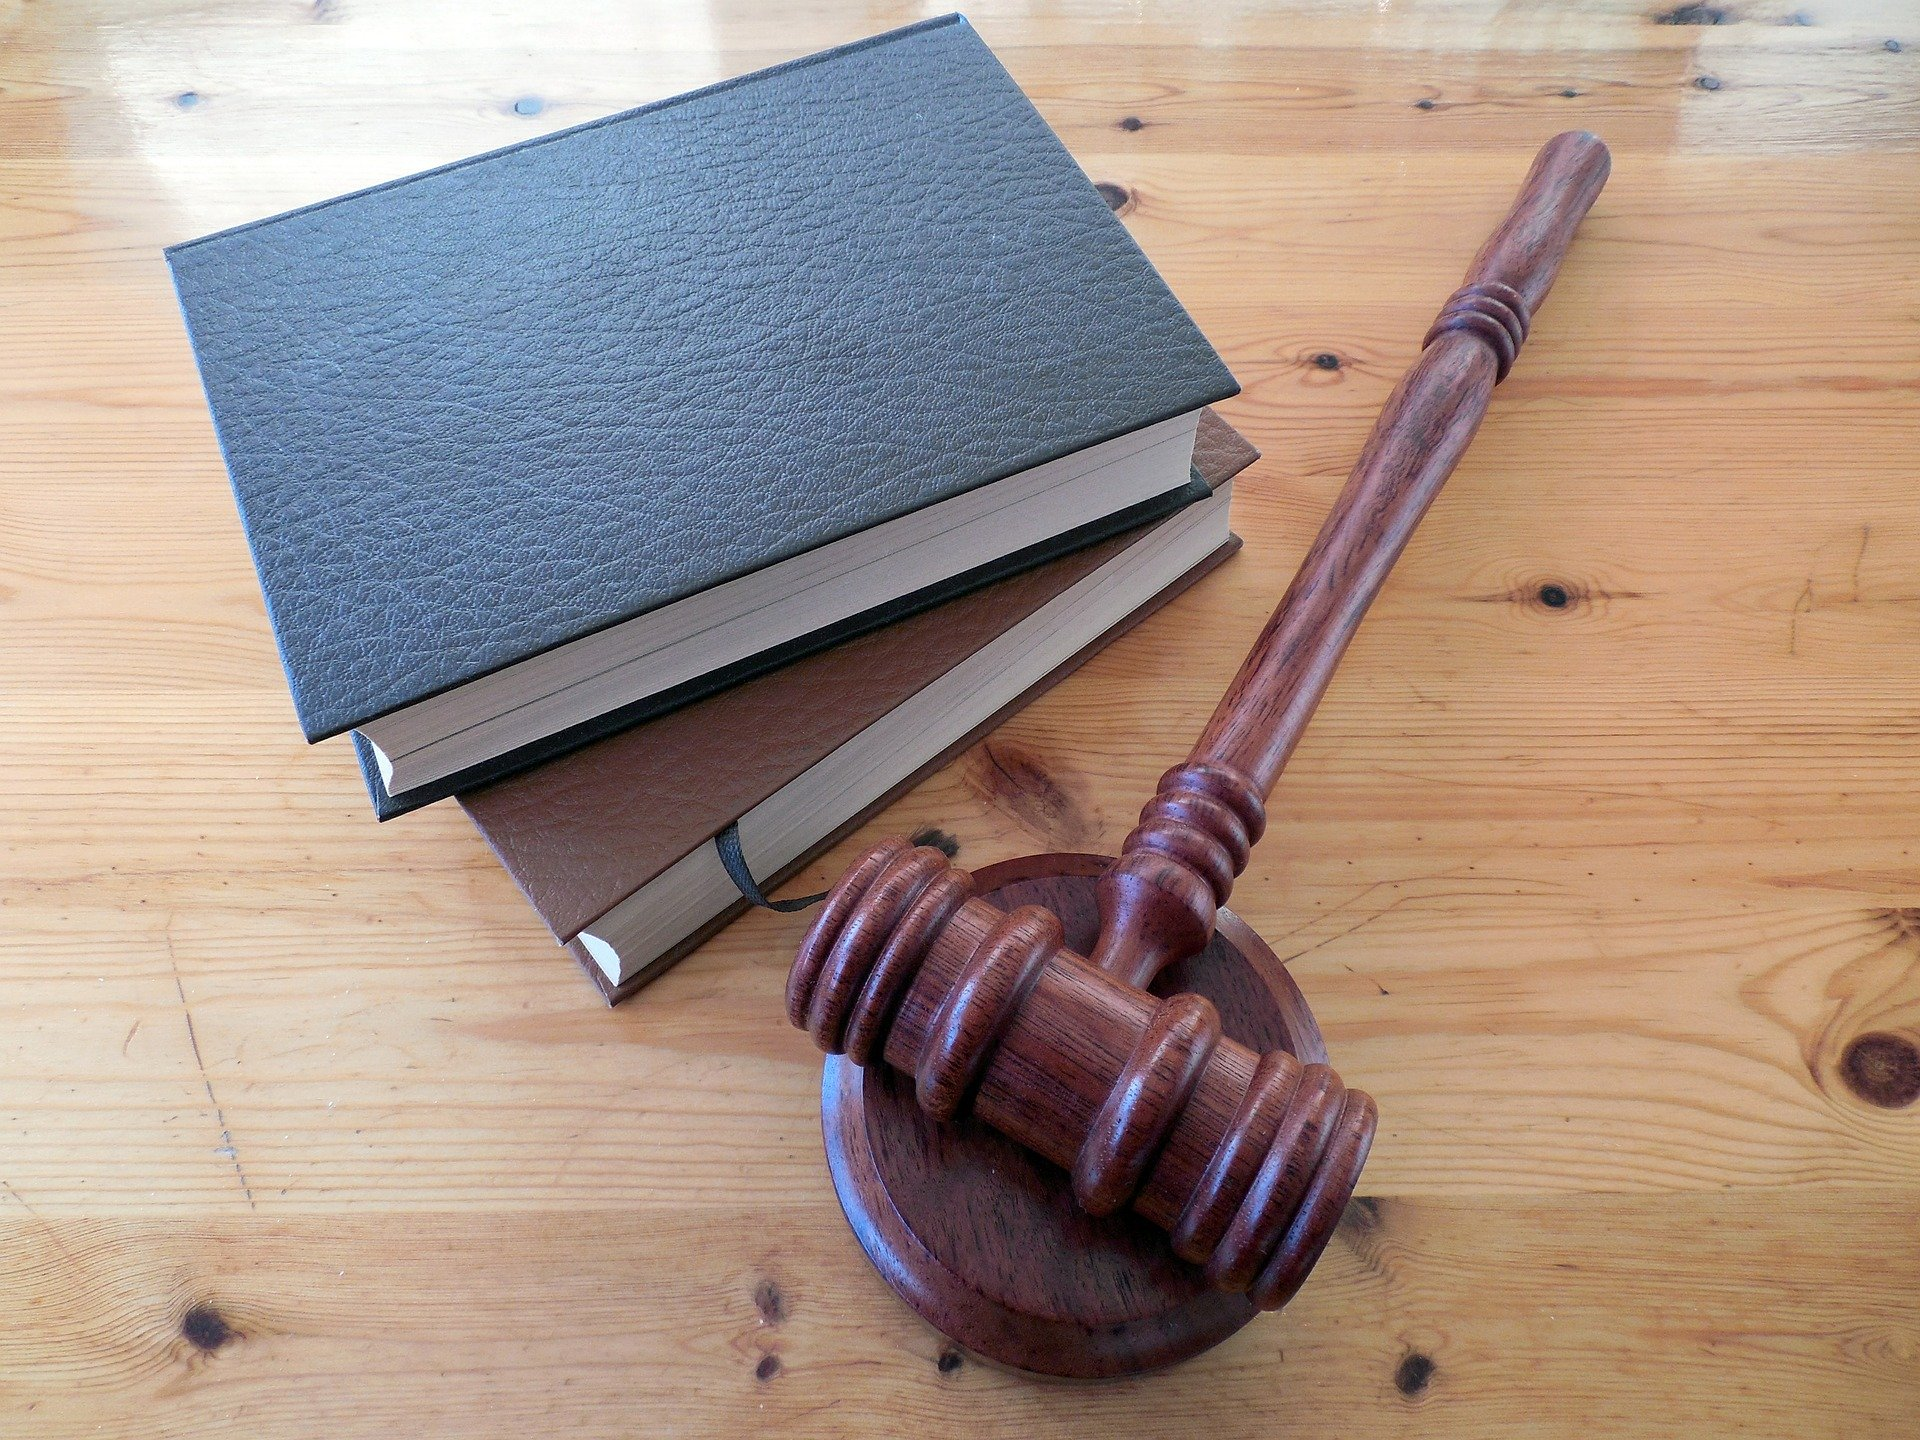 Outsourcing Legal Work - Growth Ladder for Legal Industry